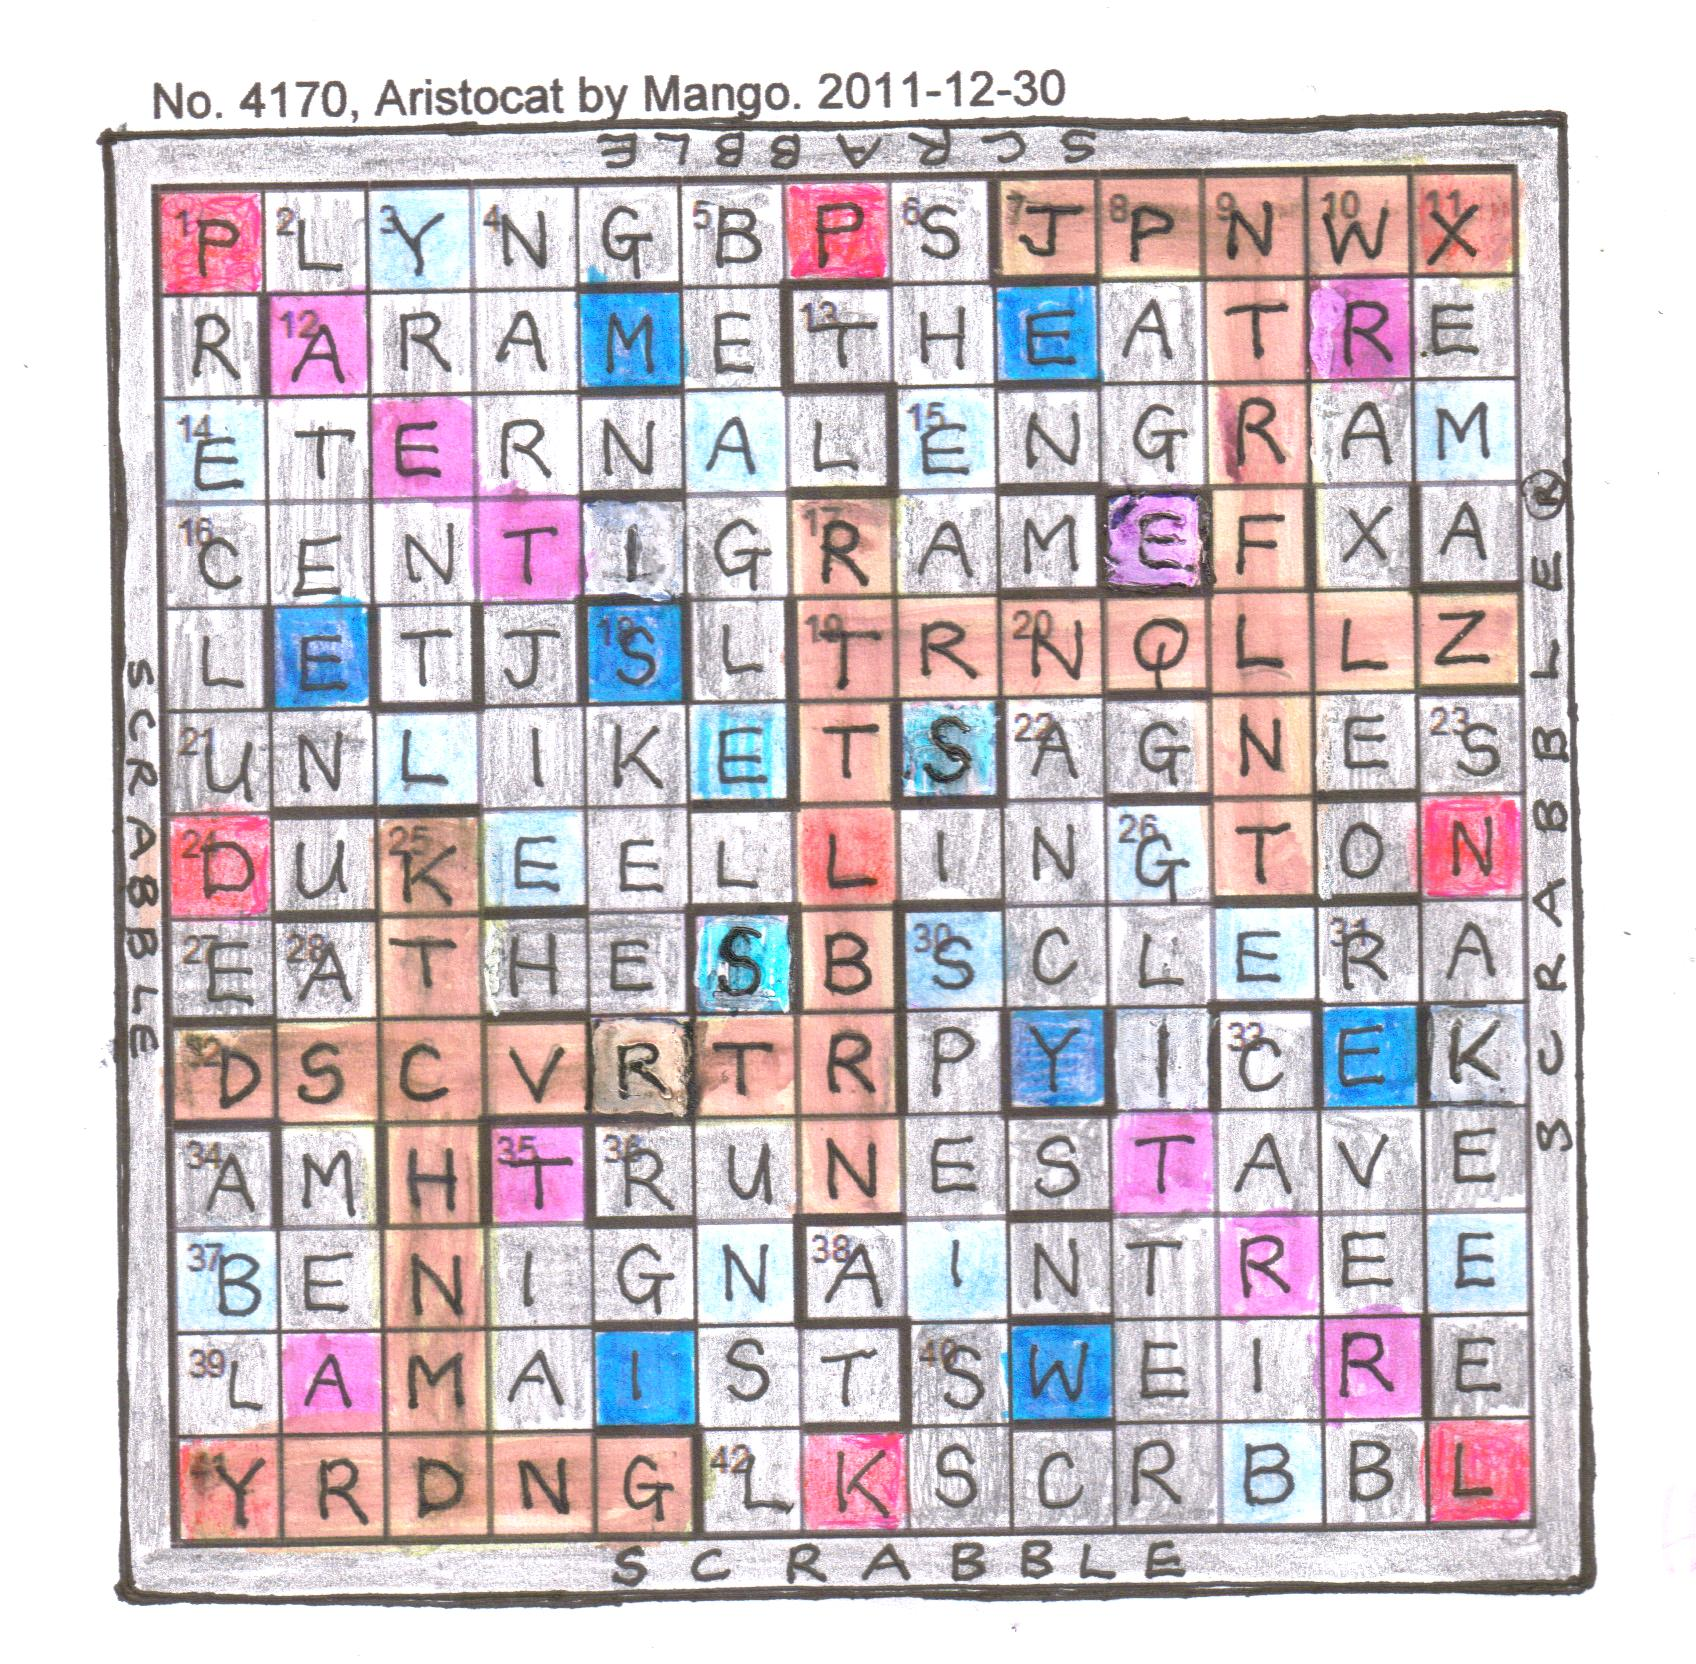 Letter Scrabble Words Without Vowels